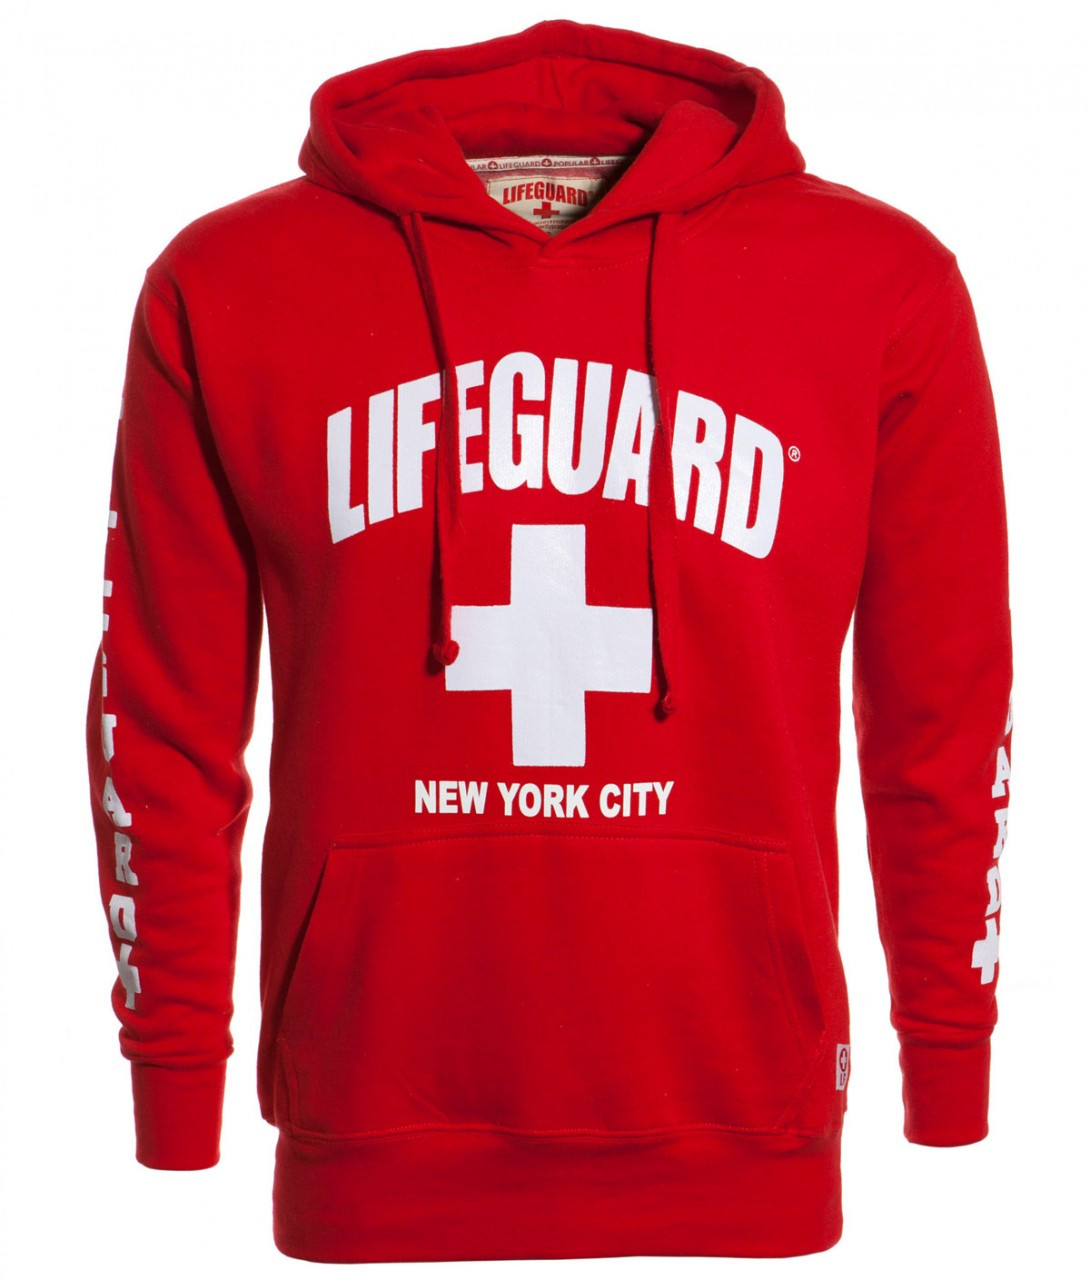 LIFEGUARD New York City Red Hoodie photo